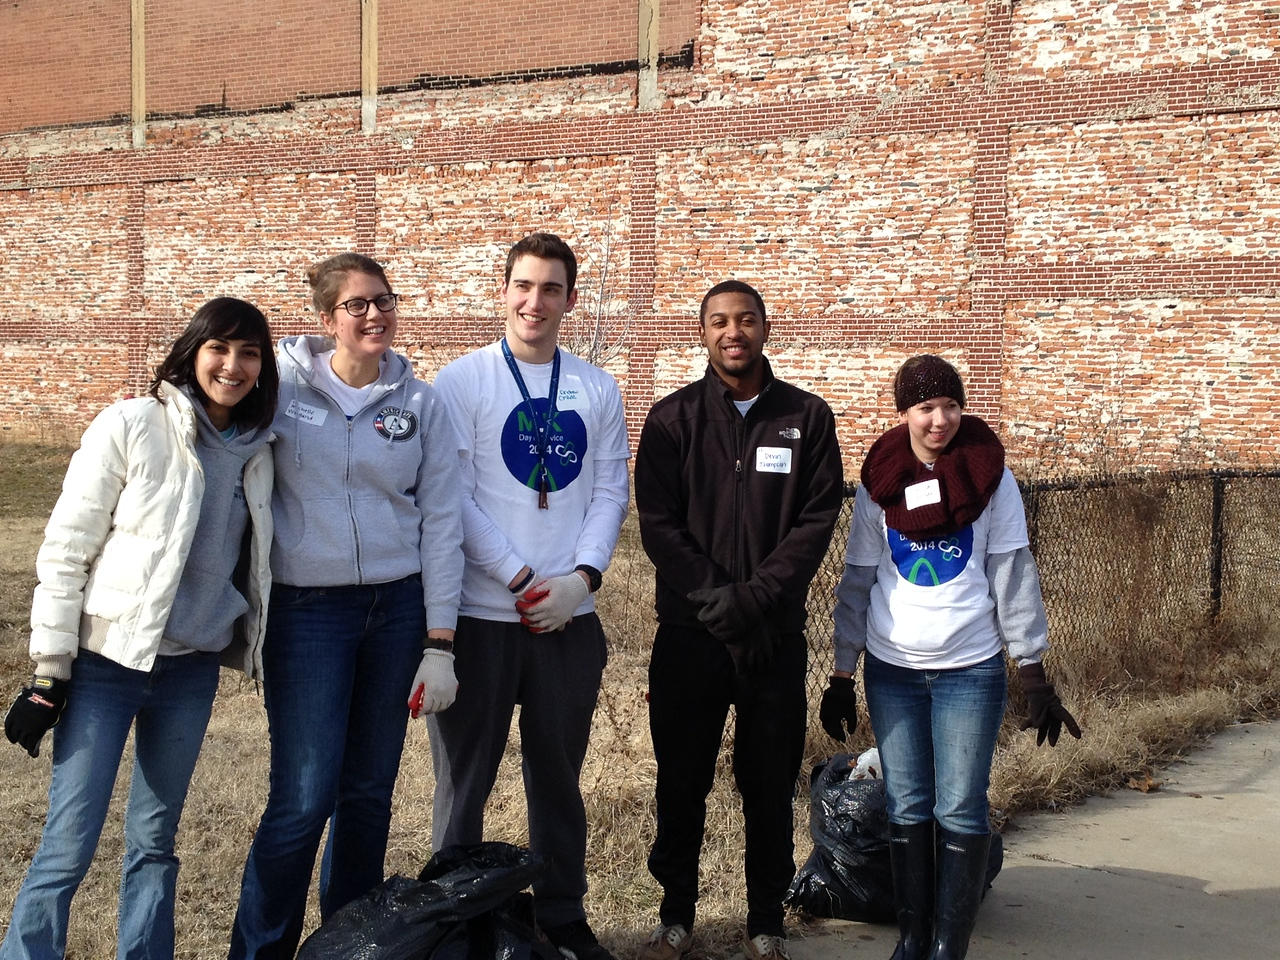 The University of Missouri St. Louis, AmeriCorps VISTA, College Bound, and AmeriCorps Alums joined forces to volunteer at 13 sites across the St. Louis Area. Over 200 volunteers participated.